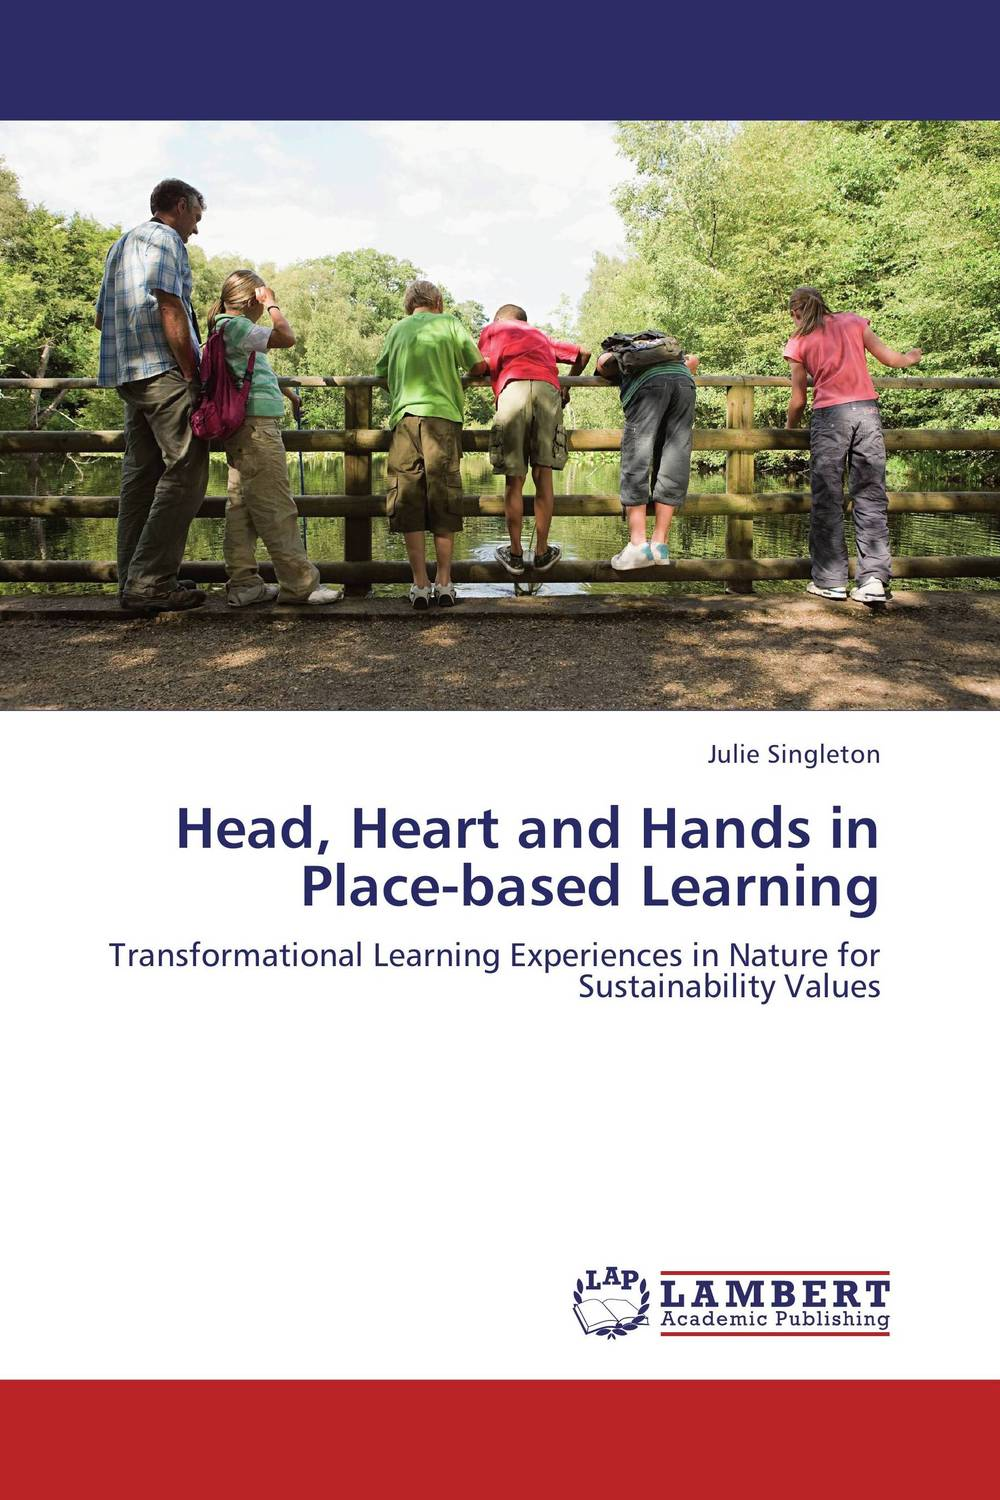 Head, Heart and Hands in Place-based Learning pso based evolutionary learning